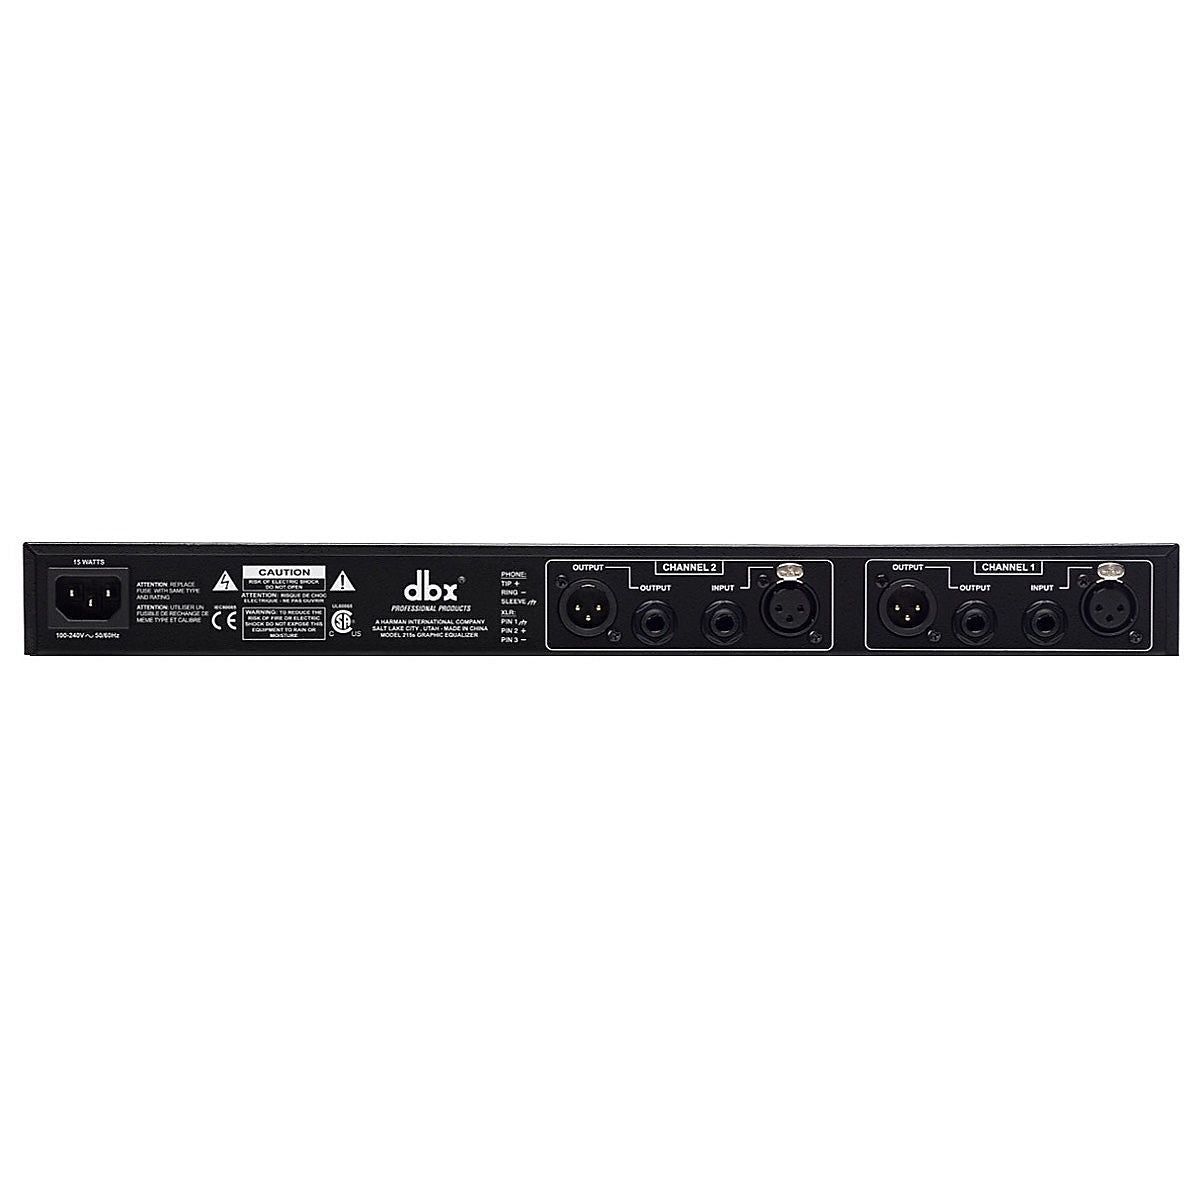 dbx 215S Dual 15-Band Graphic Equalizer